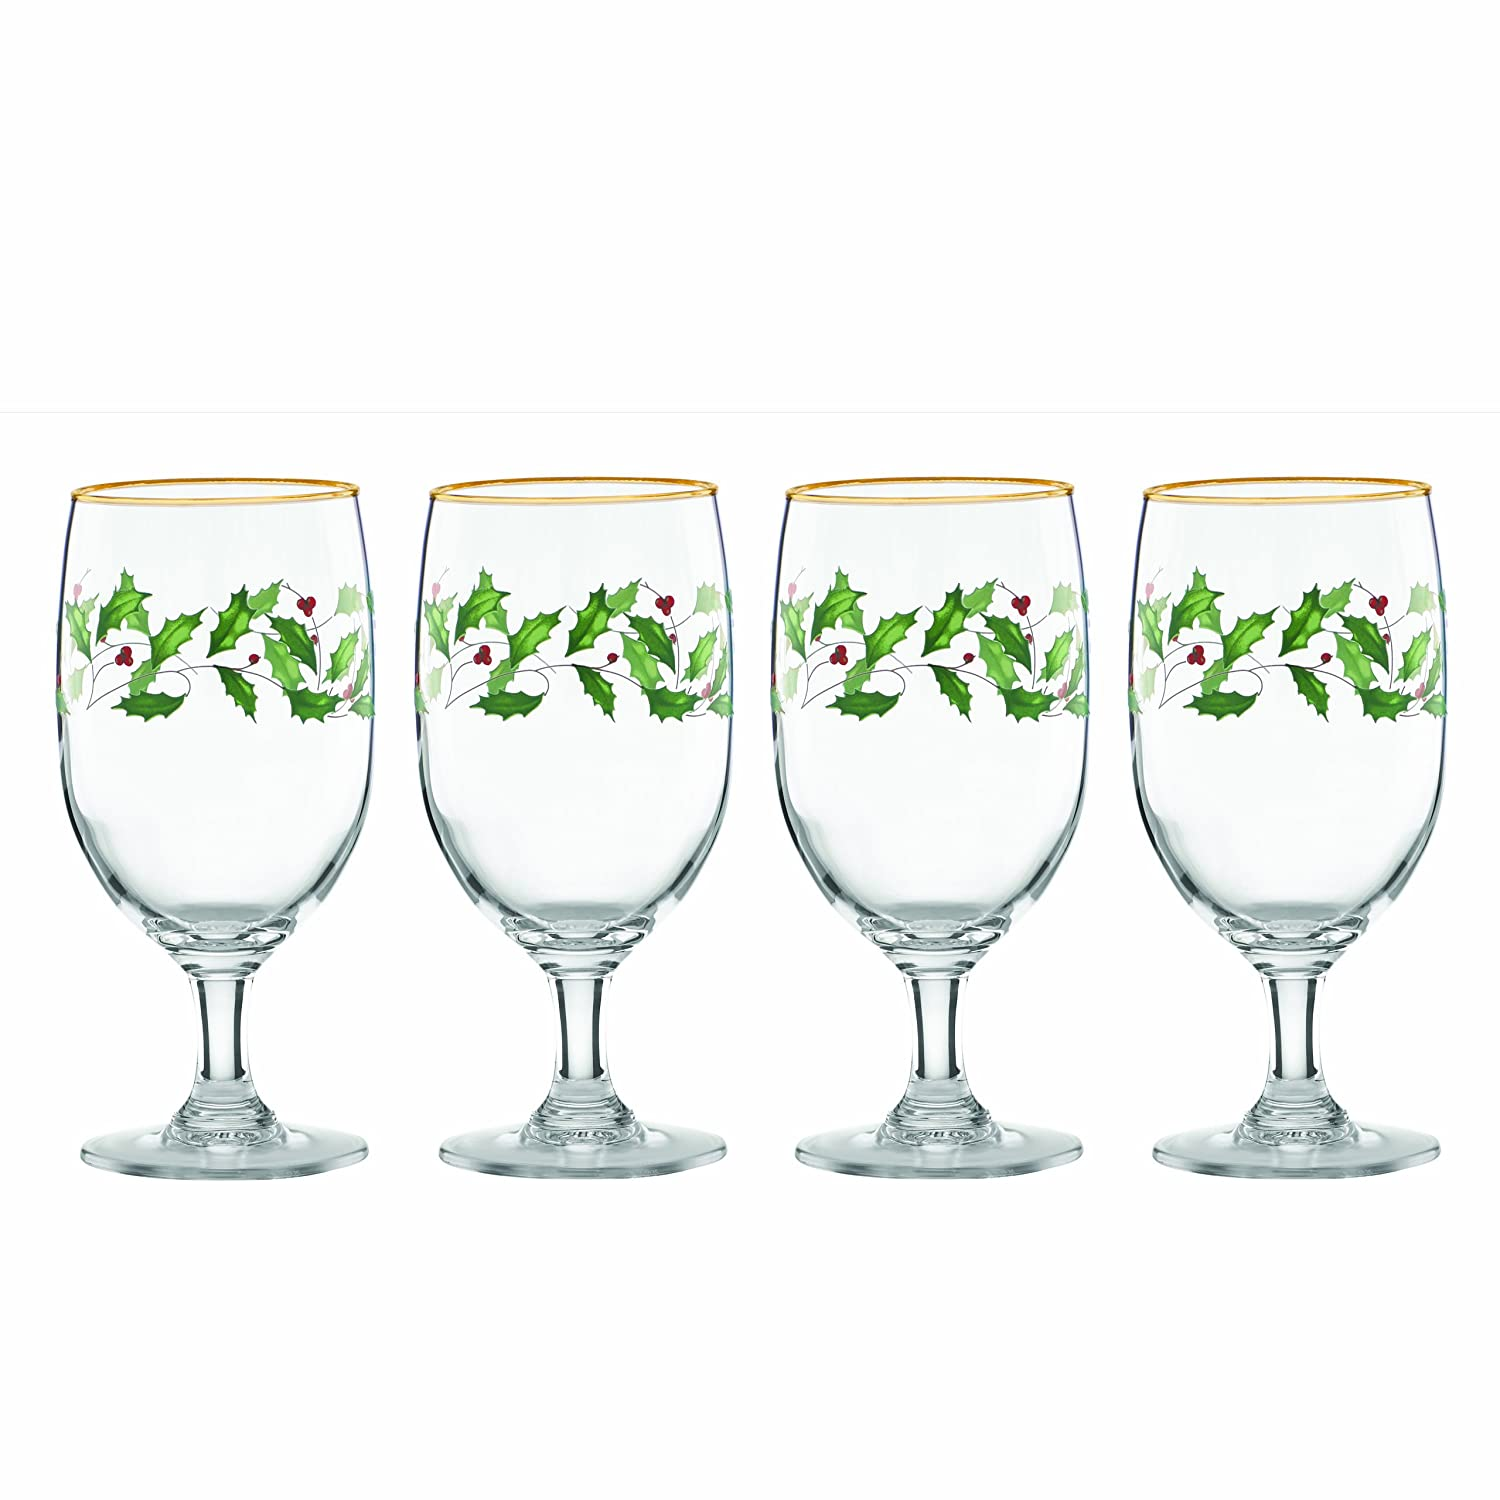 Lenox Holiday Balloon Glass, Clear, Set of 4 856101